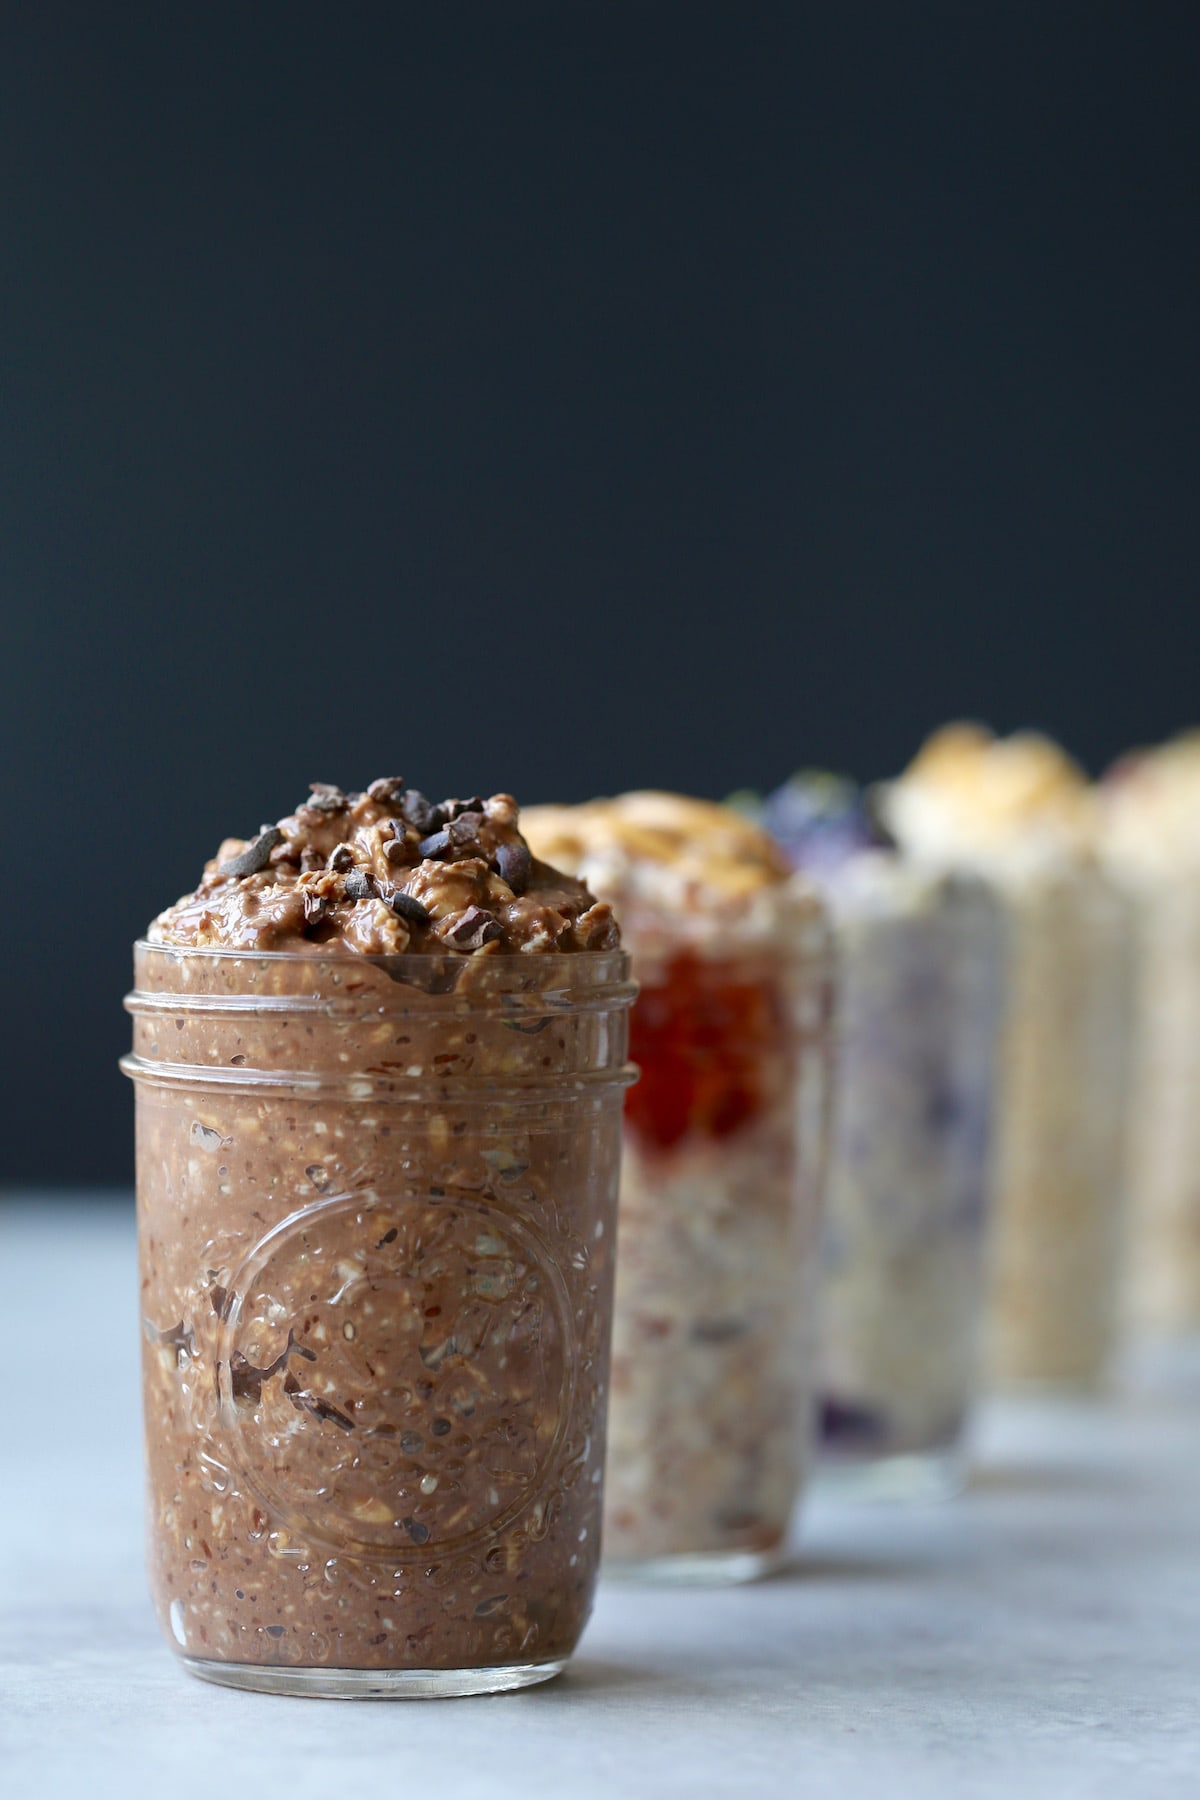 A line of different flavored overnight oats